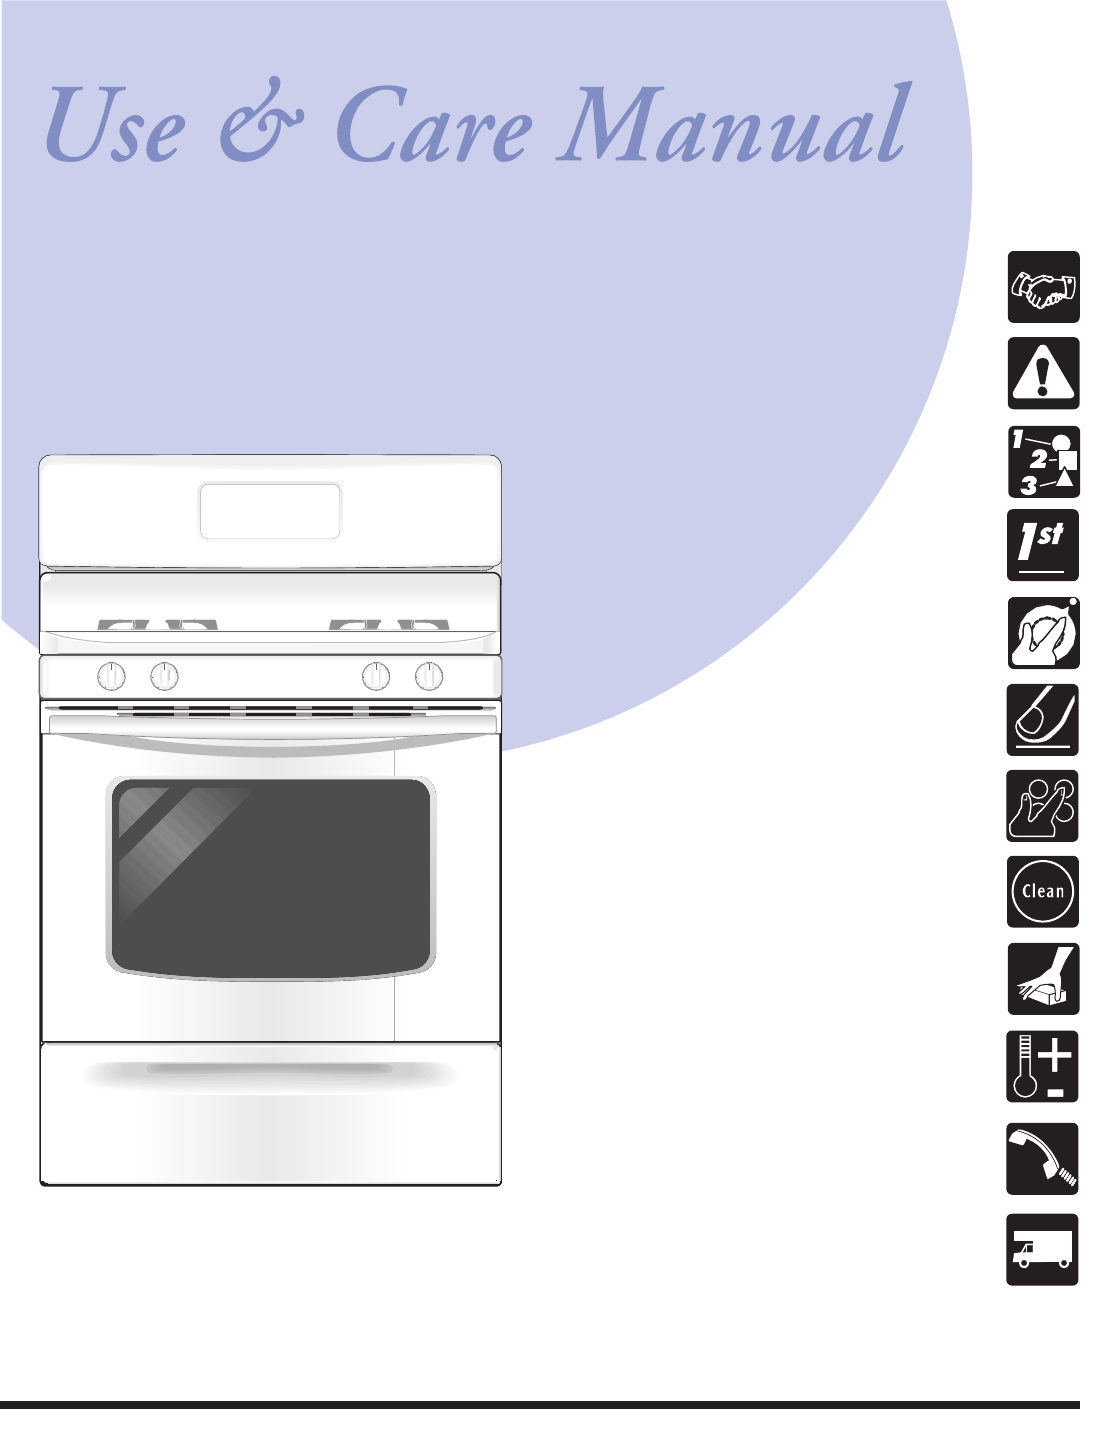 frigidaire range es200 user guide manualsonline com rh phone manualsonline com frigidaire electrolux gallery series oven manual frigidaire electrolux convection oven manual